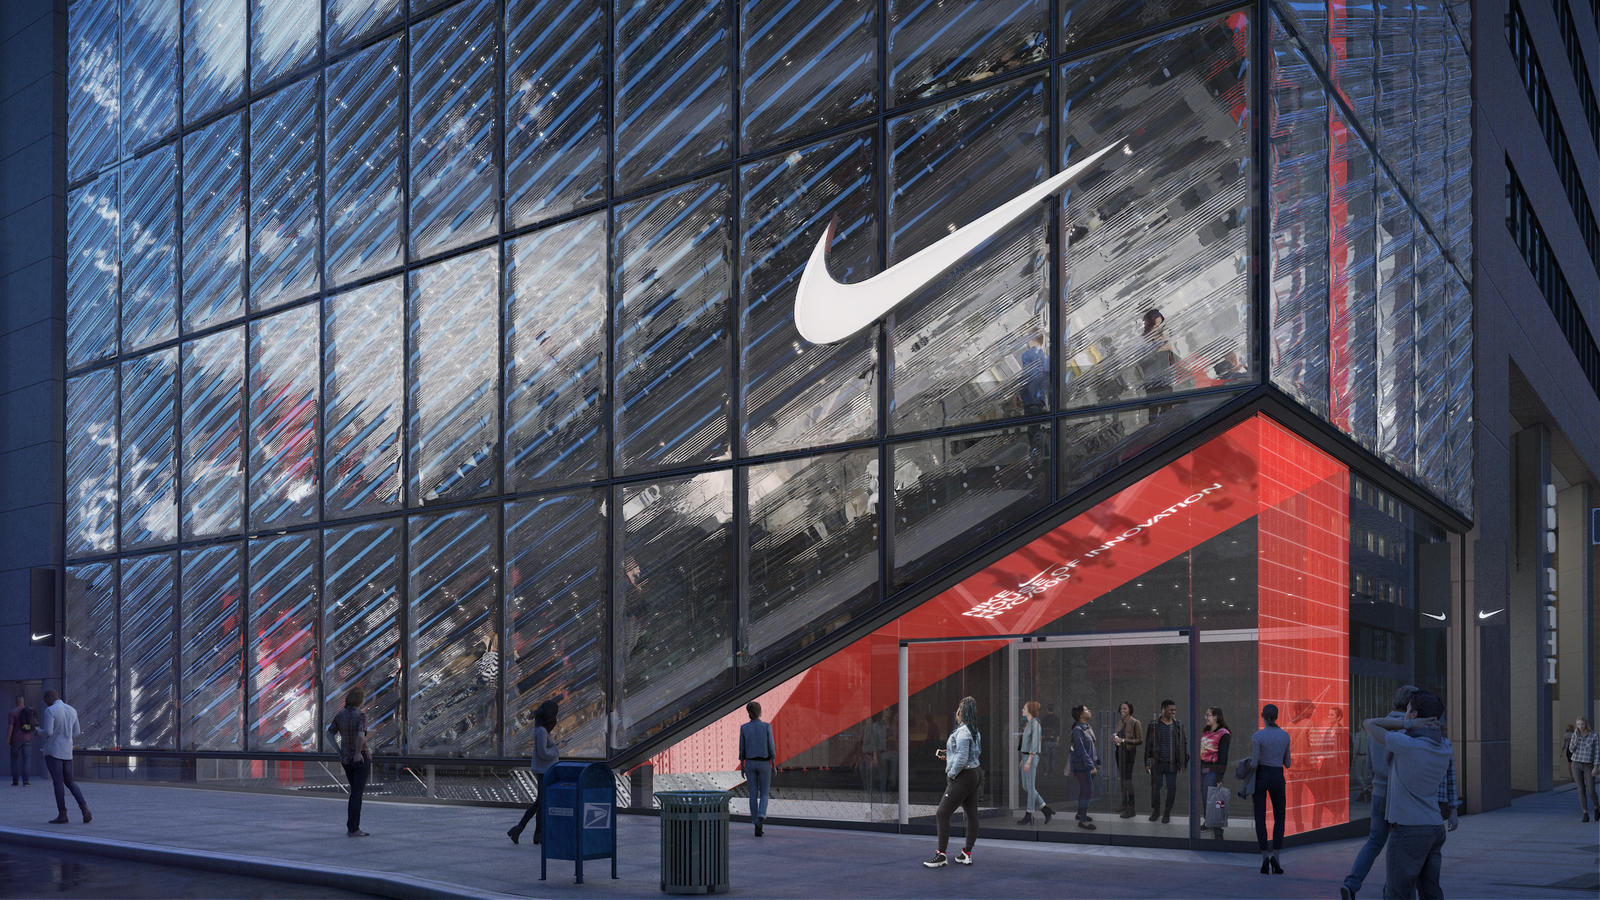 Heidi O'Neill Discusses Nike's Vision of Physical Retail - Nike News